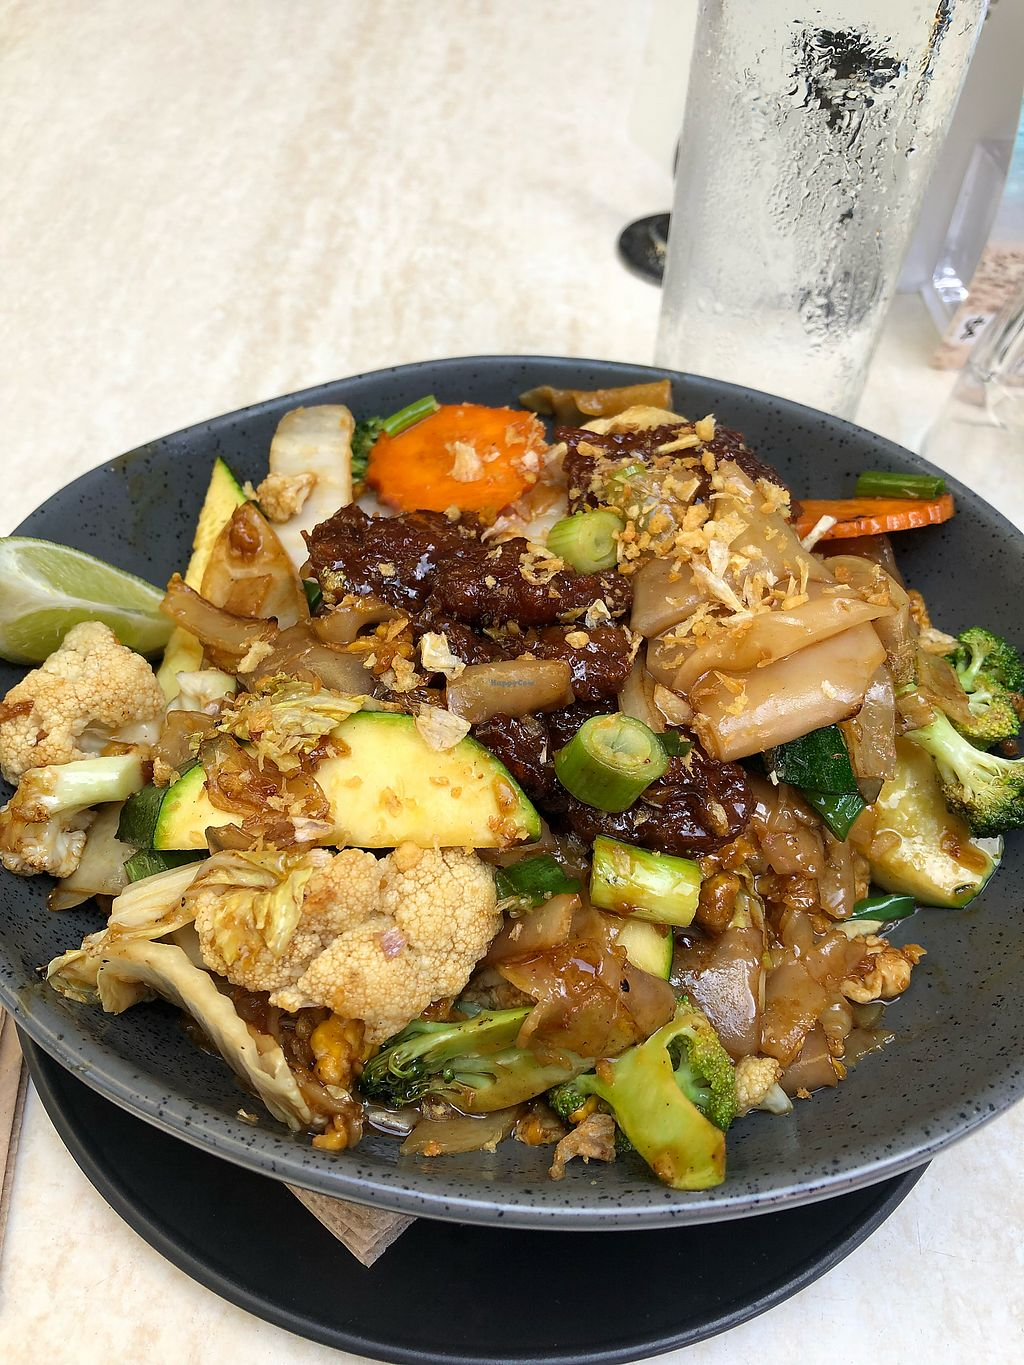 """Photo of Hot Chilli Bean Thai Cafe  by <a href=""""/members/profile/sandra.dezwart%40bigpon"""">sandra.dezwart@bigpon</a> <br/>Vegan pad see eww with mock chicken awesome can't believe it's not chicken  <br/> March 22, 2018  - <a href='/contact/abuse/image/72486/374160'>Report</a>"""